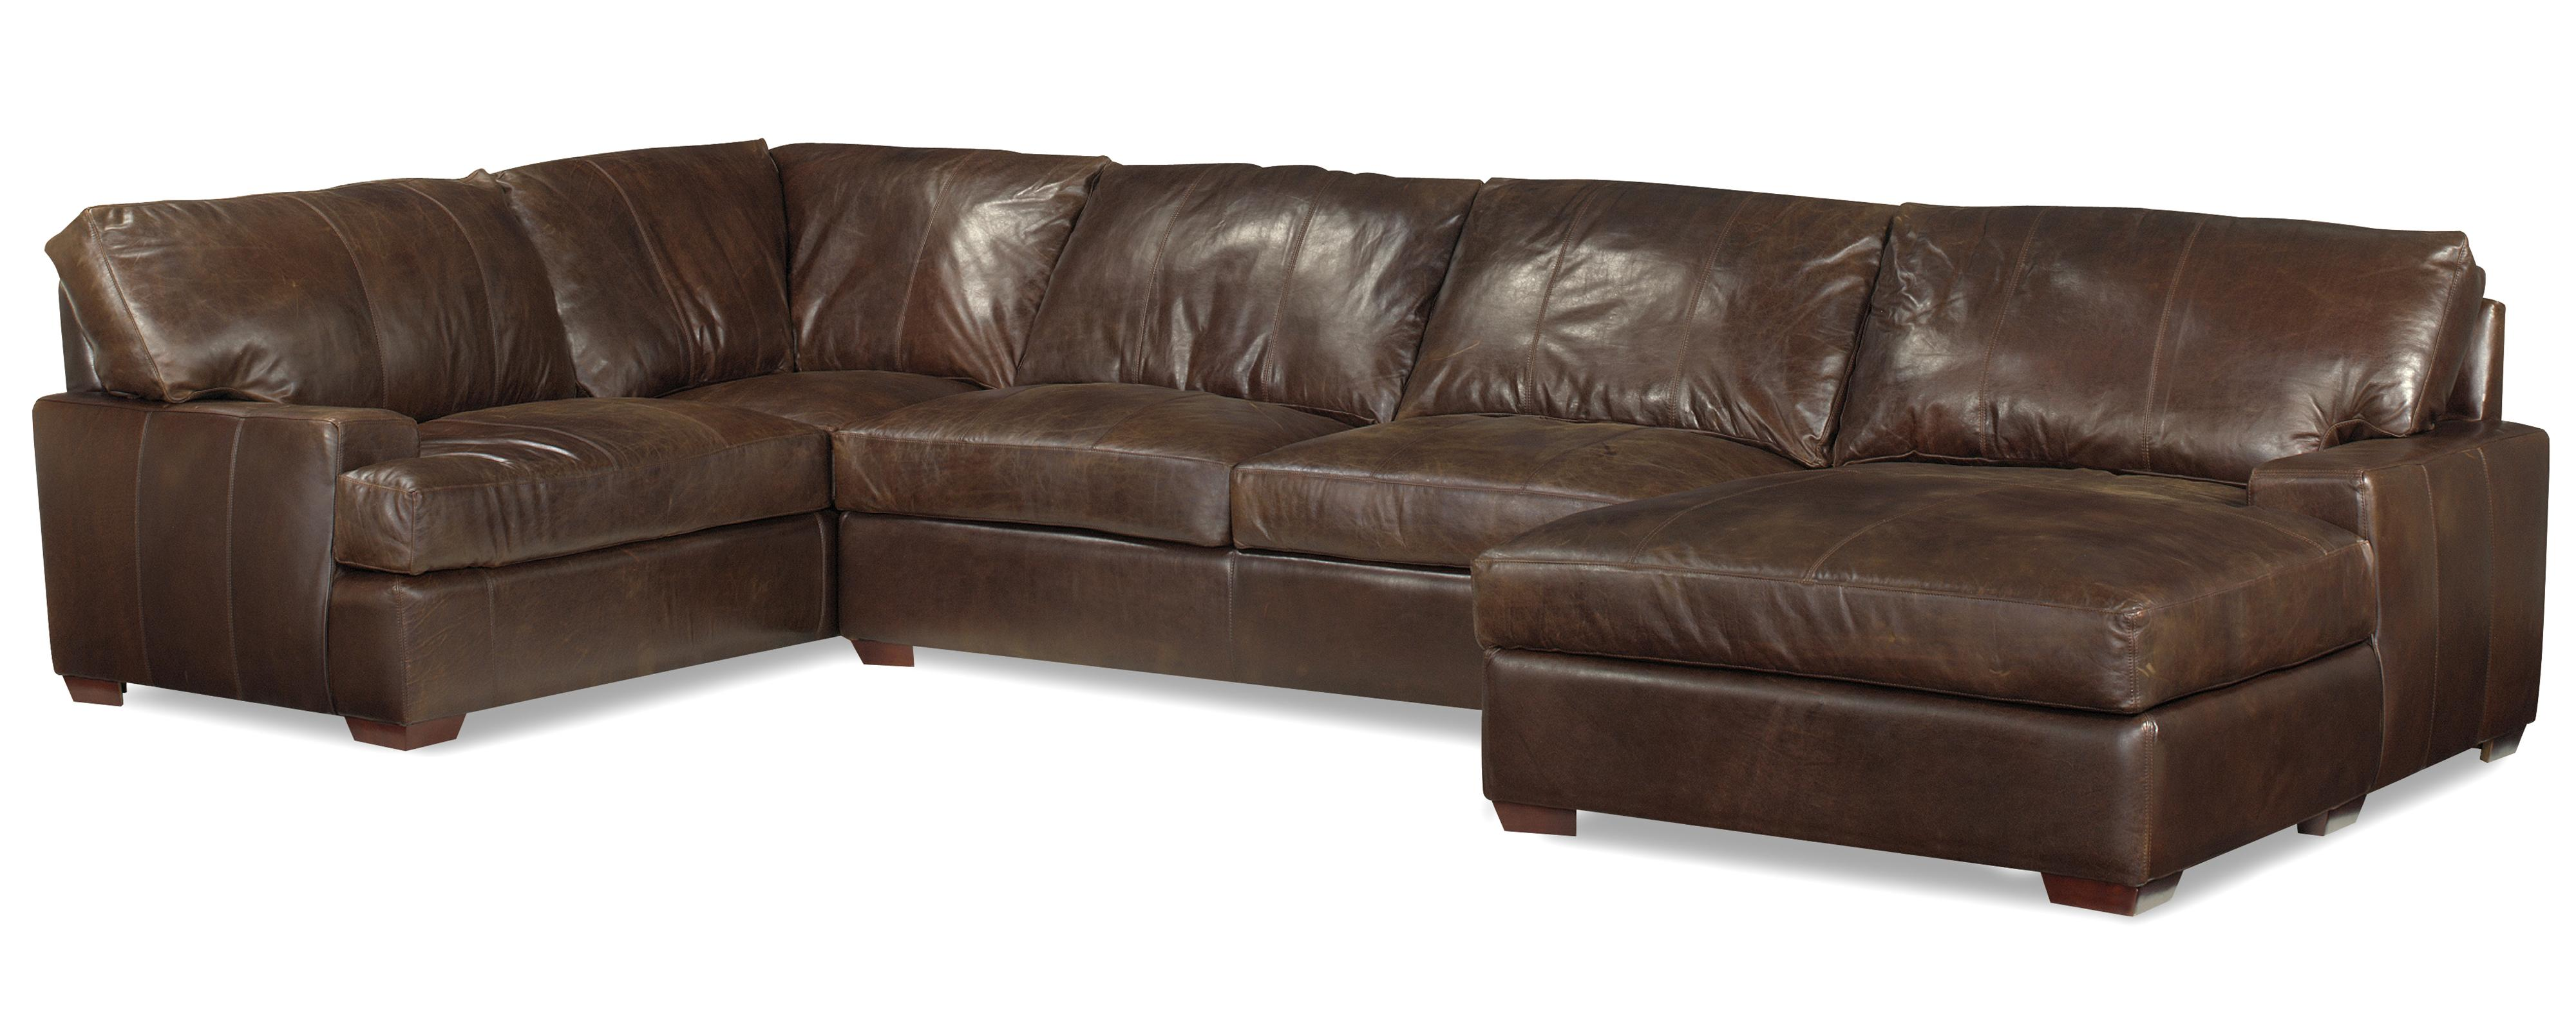 leather furniture luxe room sofa picture sectional with chaise pillowtop dump odyssey living of the